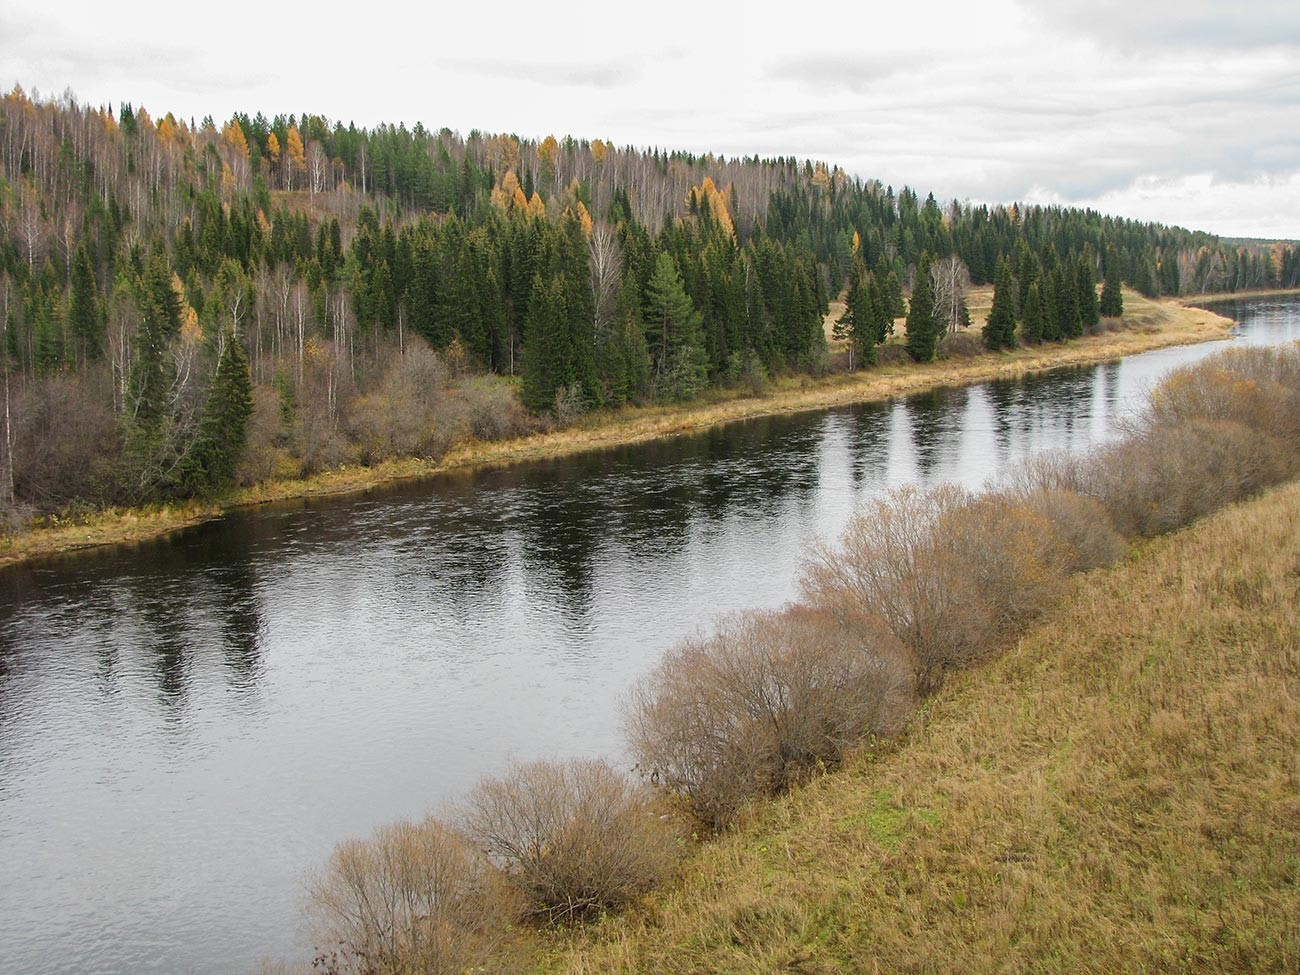 The Ukhta river, where oil deposits have been discovered